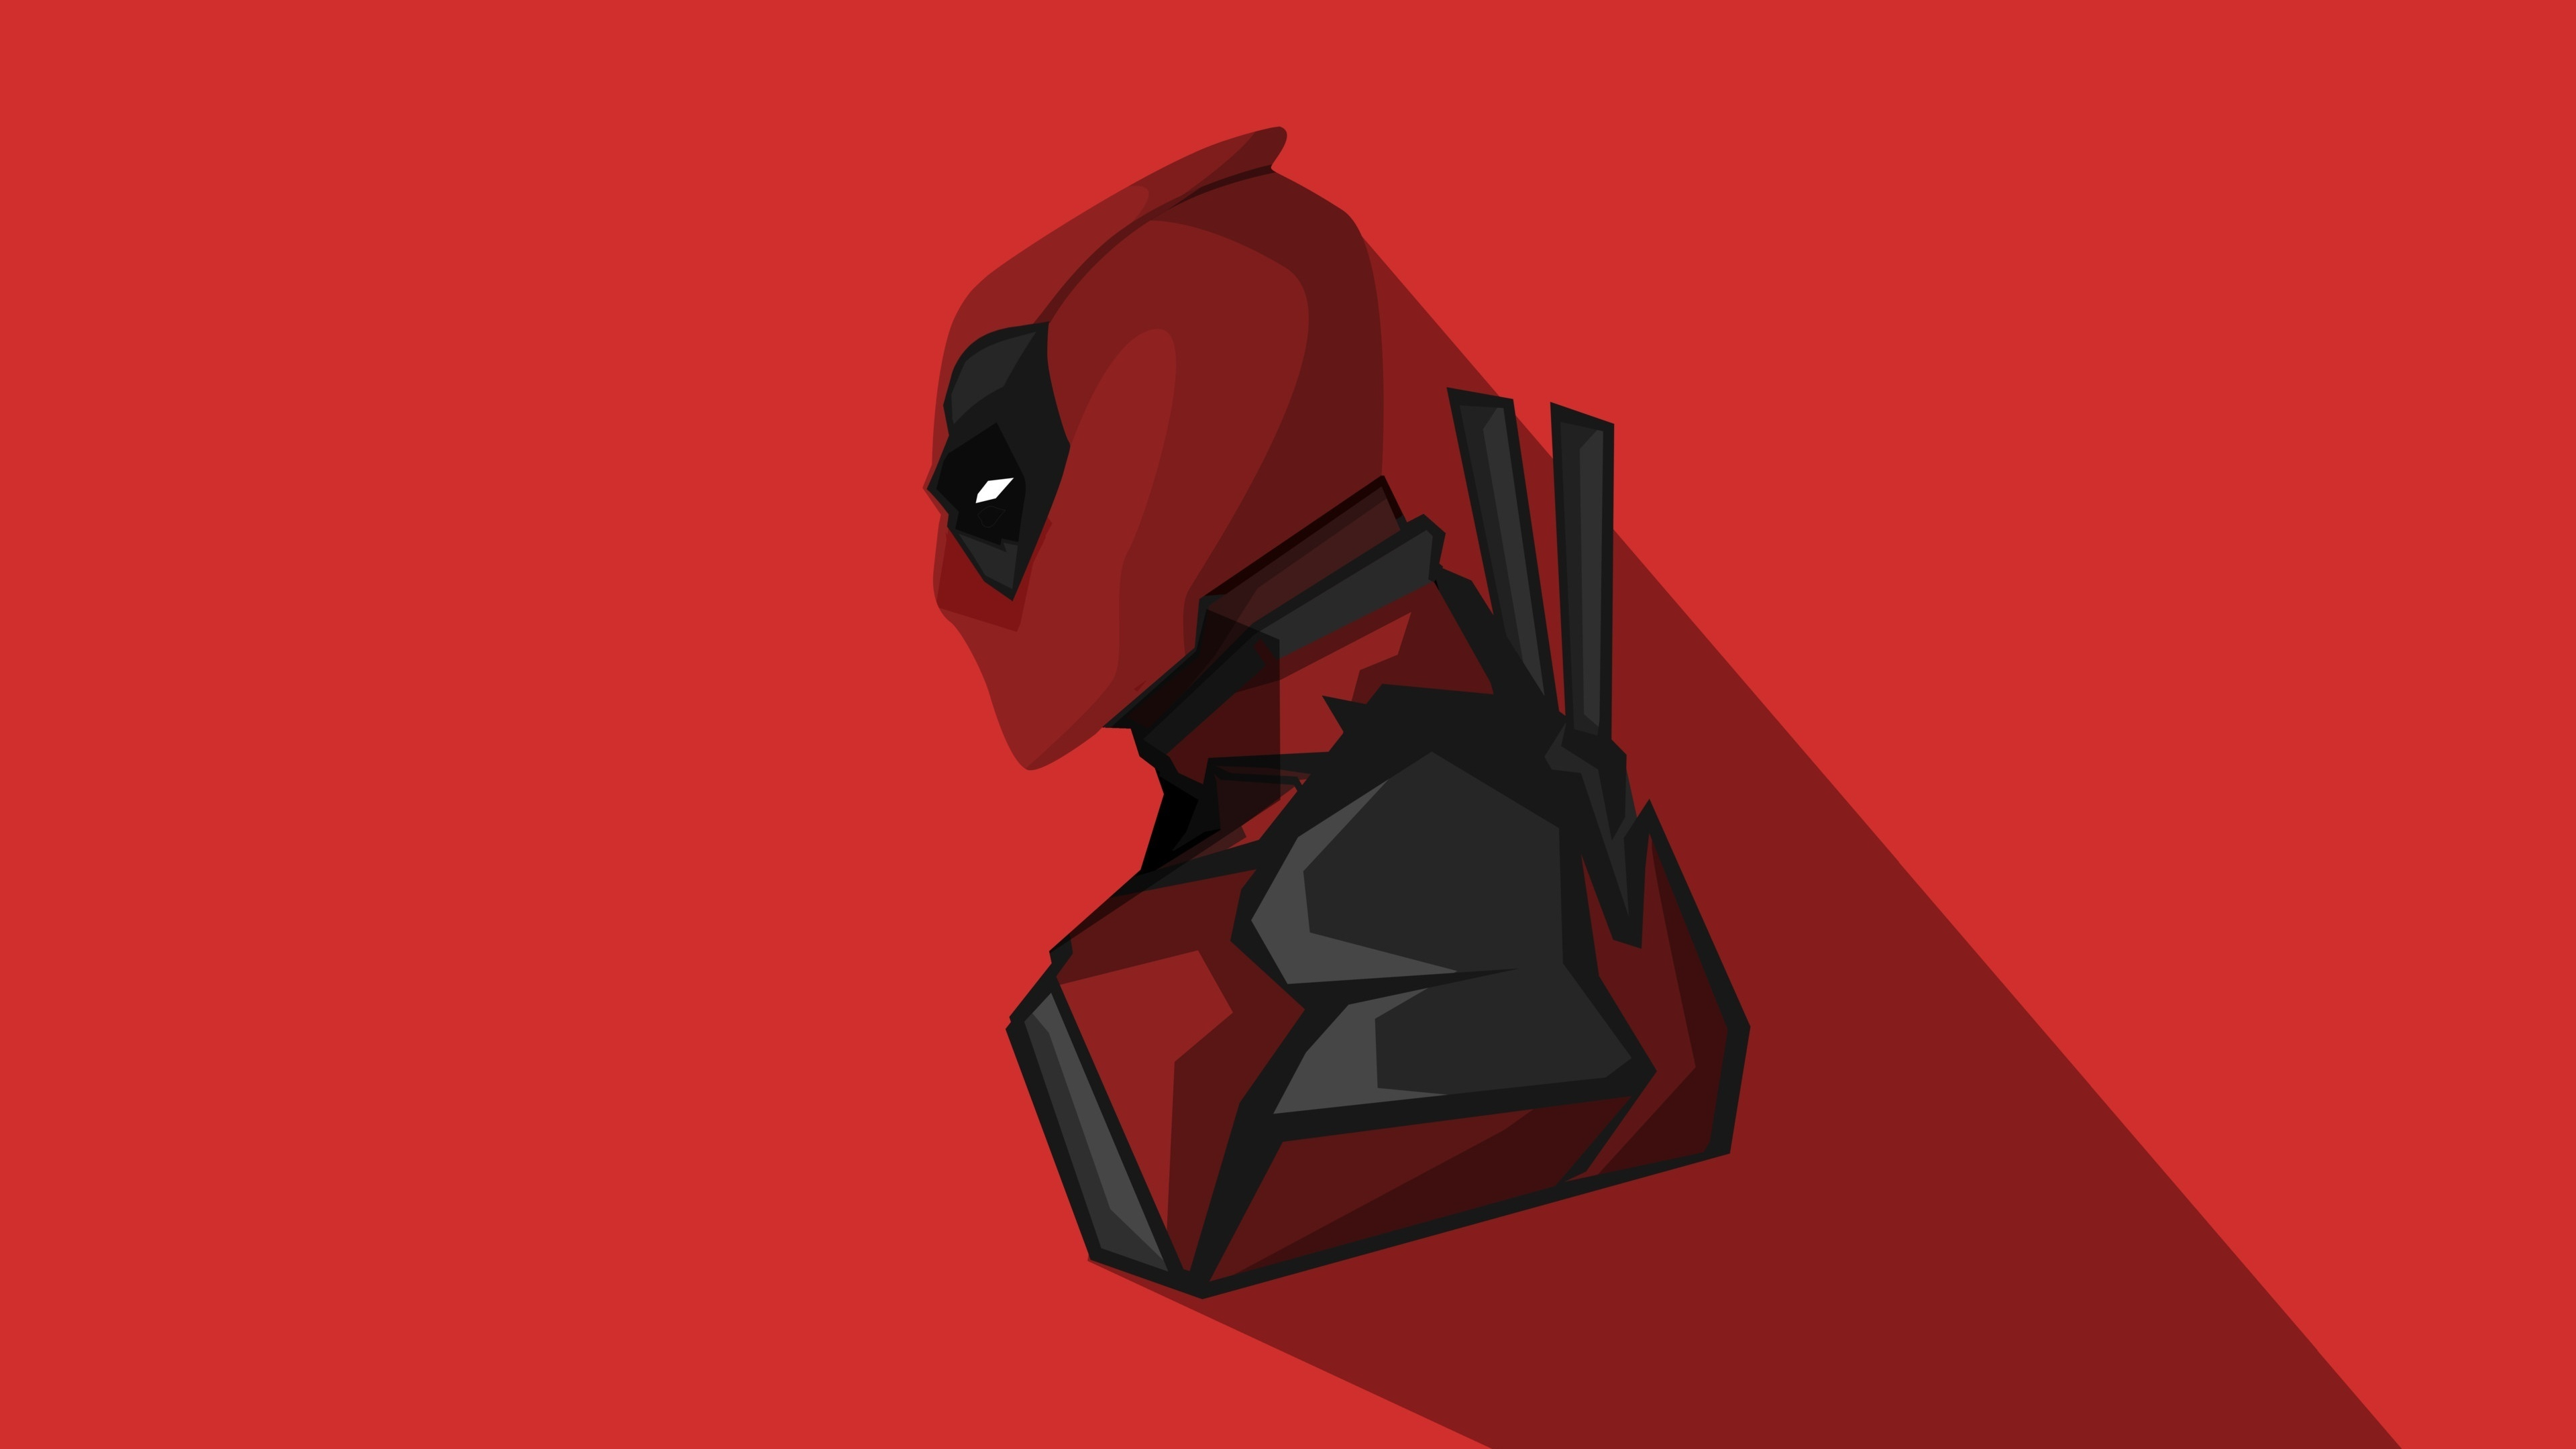 Deadpool Wallpaper For Iphone X Deadpool Hd Wallpapers For Iphone 7